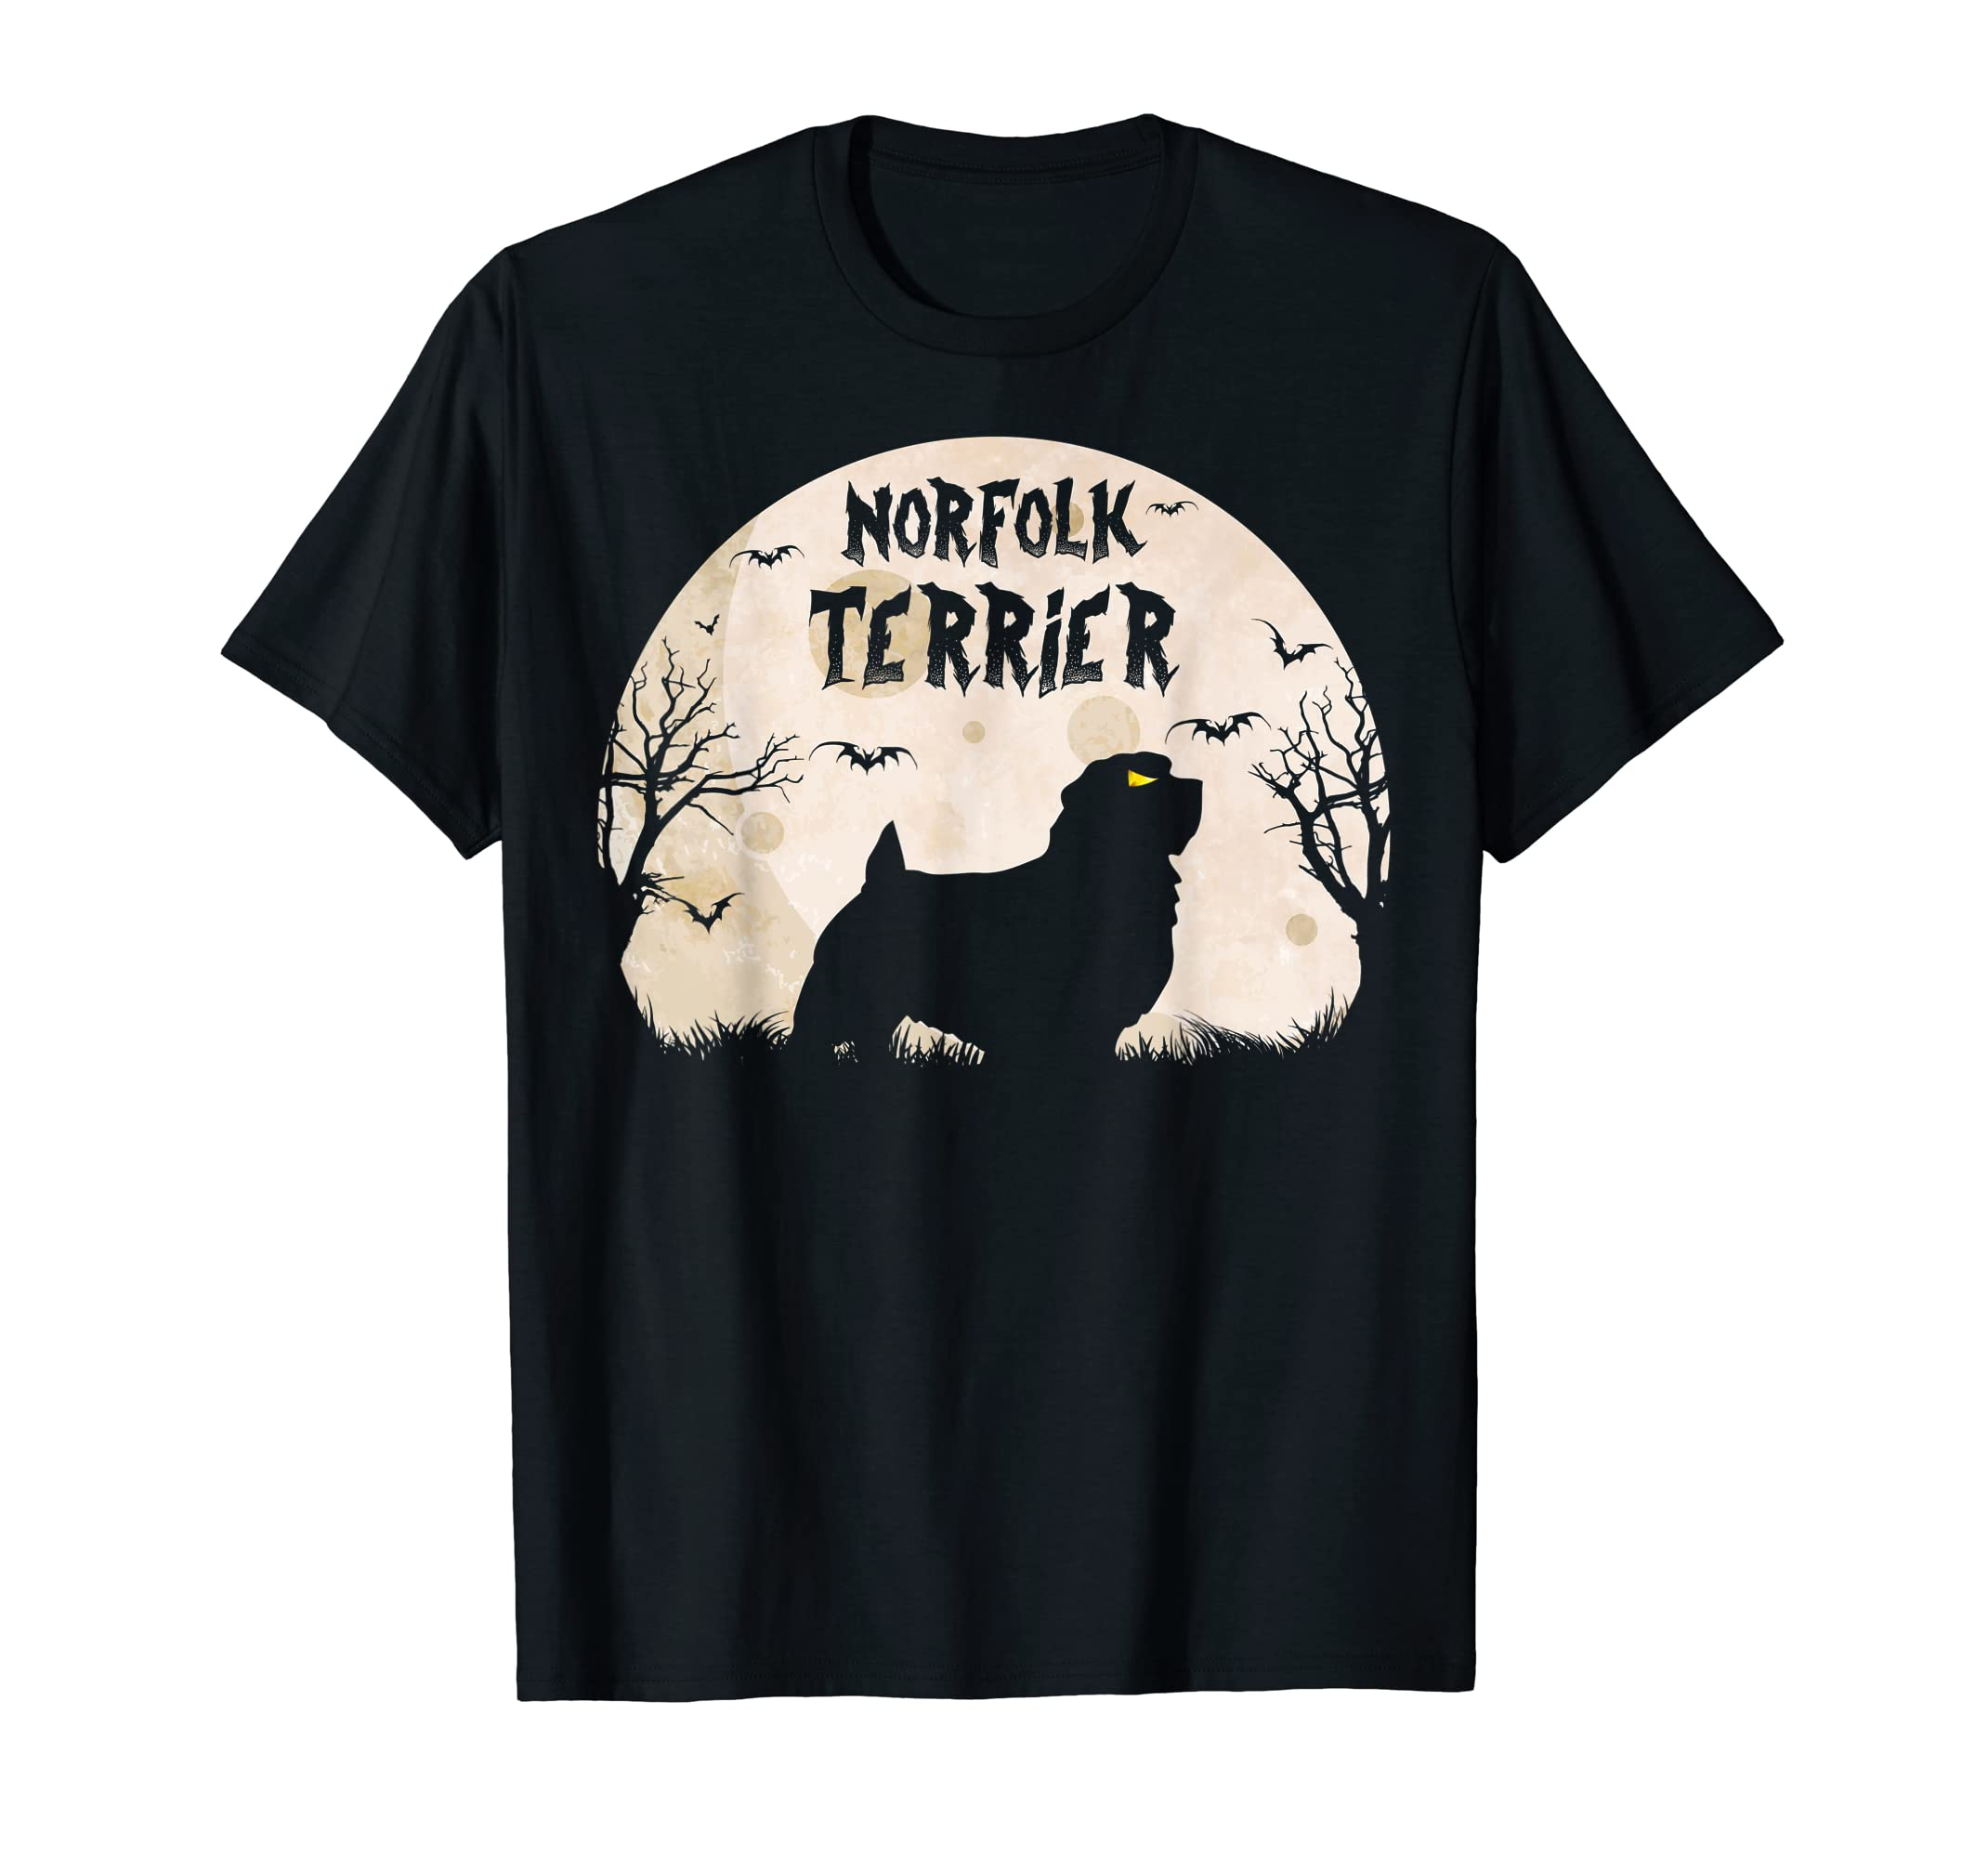 Halloween Horror Norfolk Terrier T-Shirt-Men's T-Shirt-Black